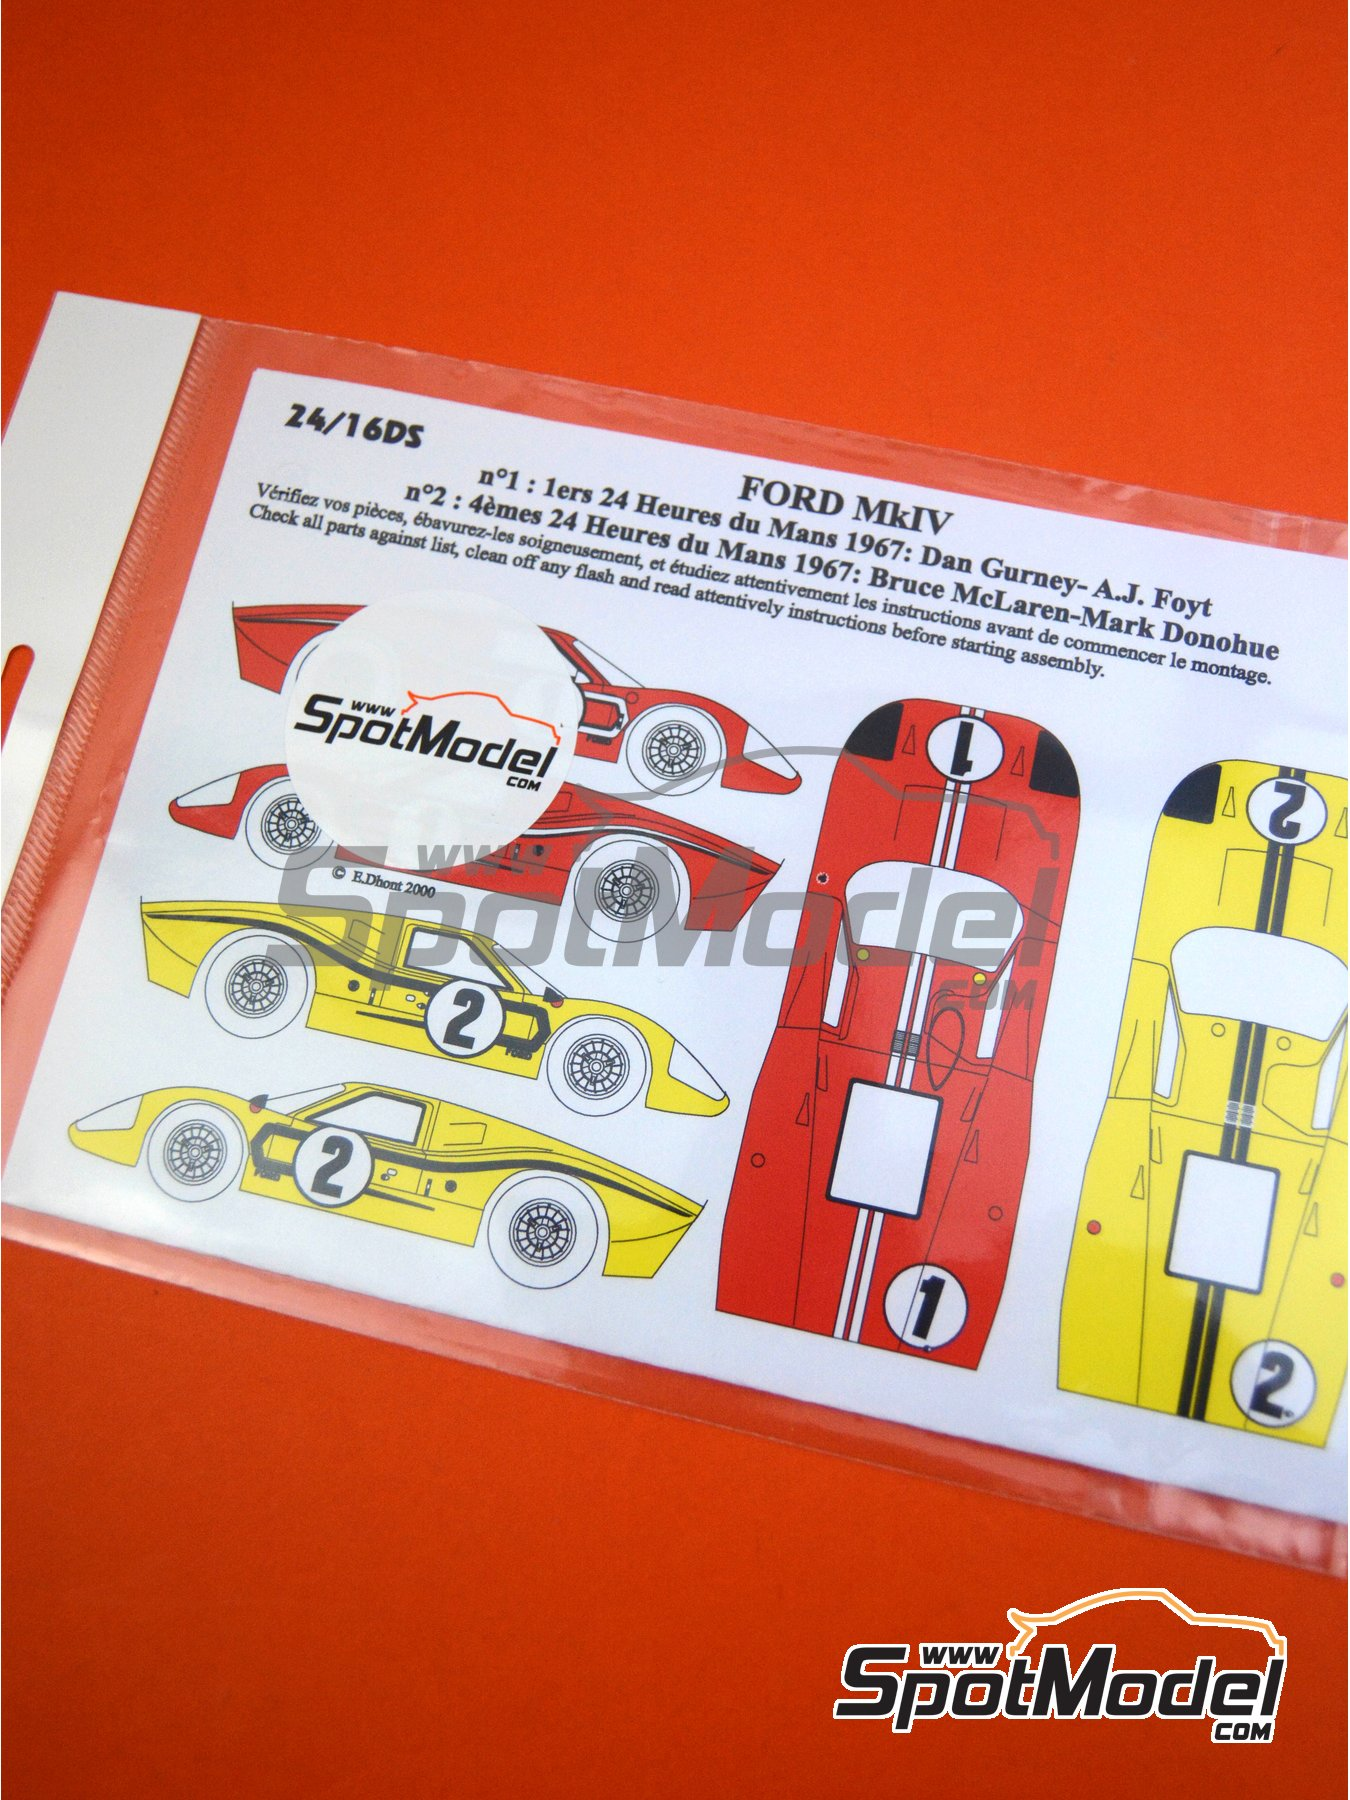 Ford GT40 Mk IV - 24 Hours Le Mans 1967 | Marking / livery in 1/24 scale manufactured by Renaissance Models (ref. 24-16DS) image